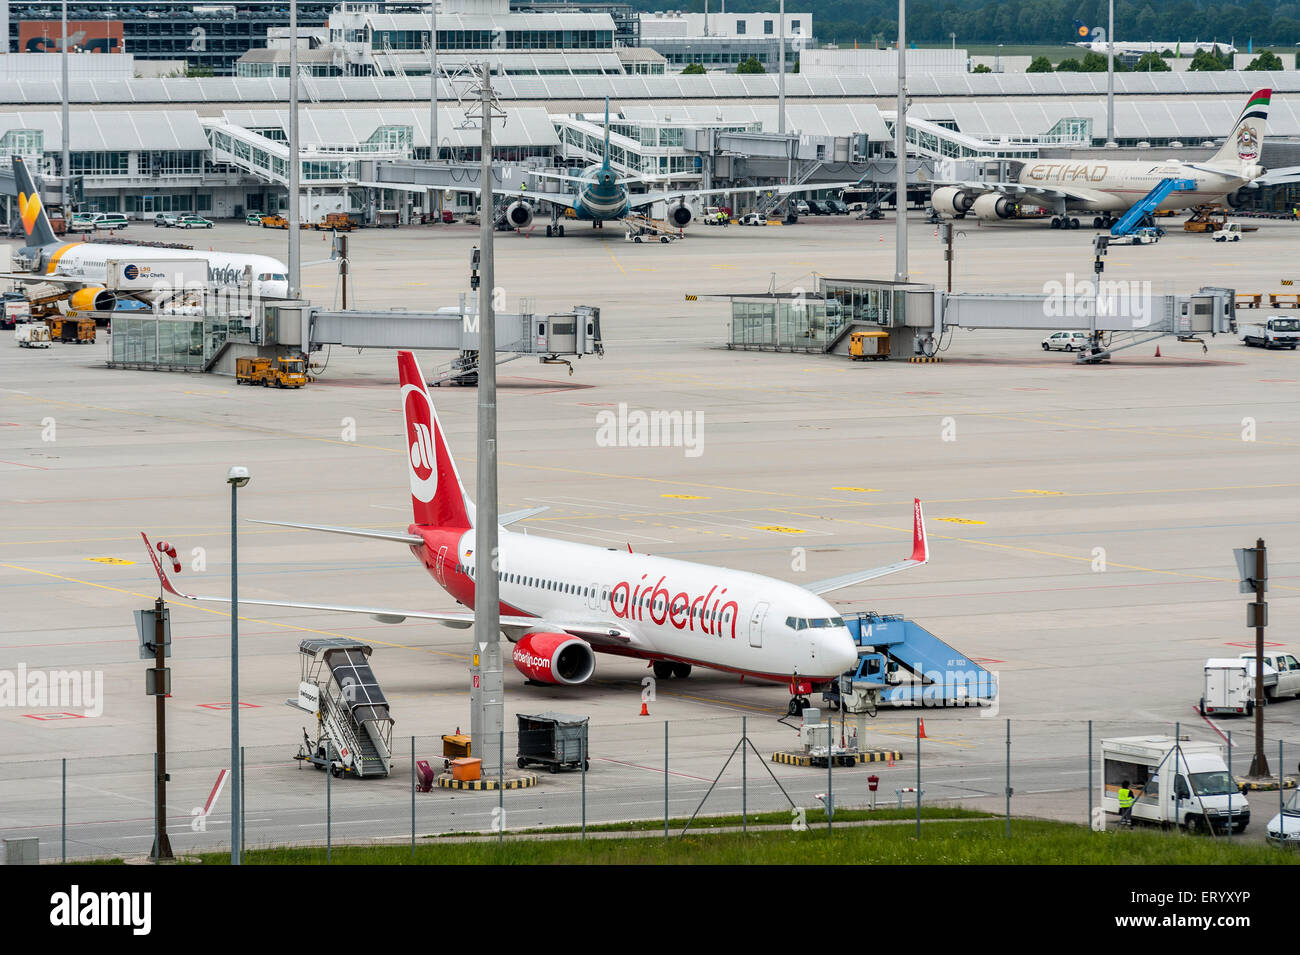 AirBerlin Plane on Munich Airport - Park Position - Stock Image